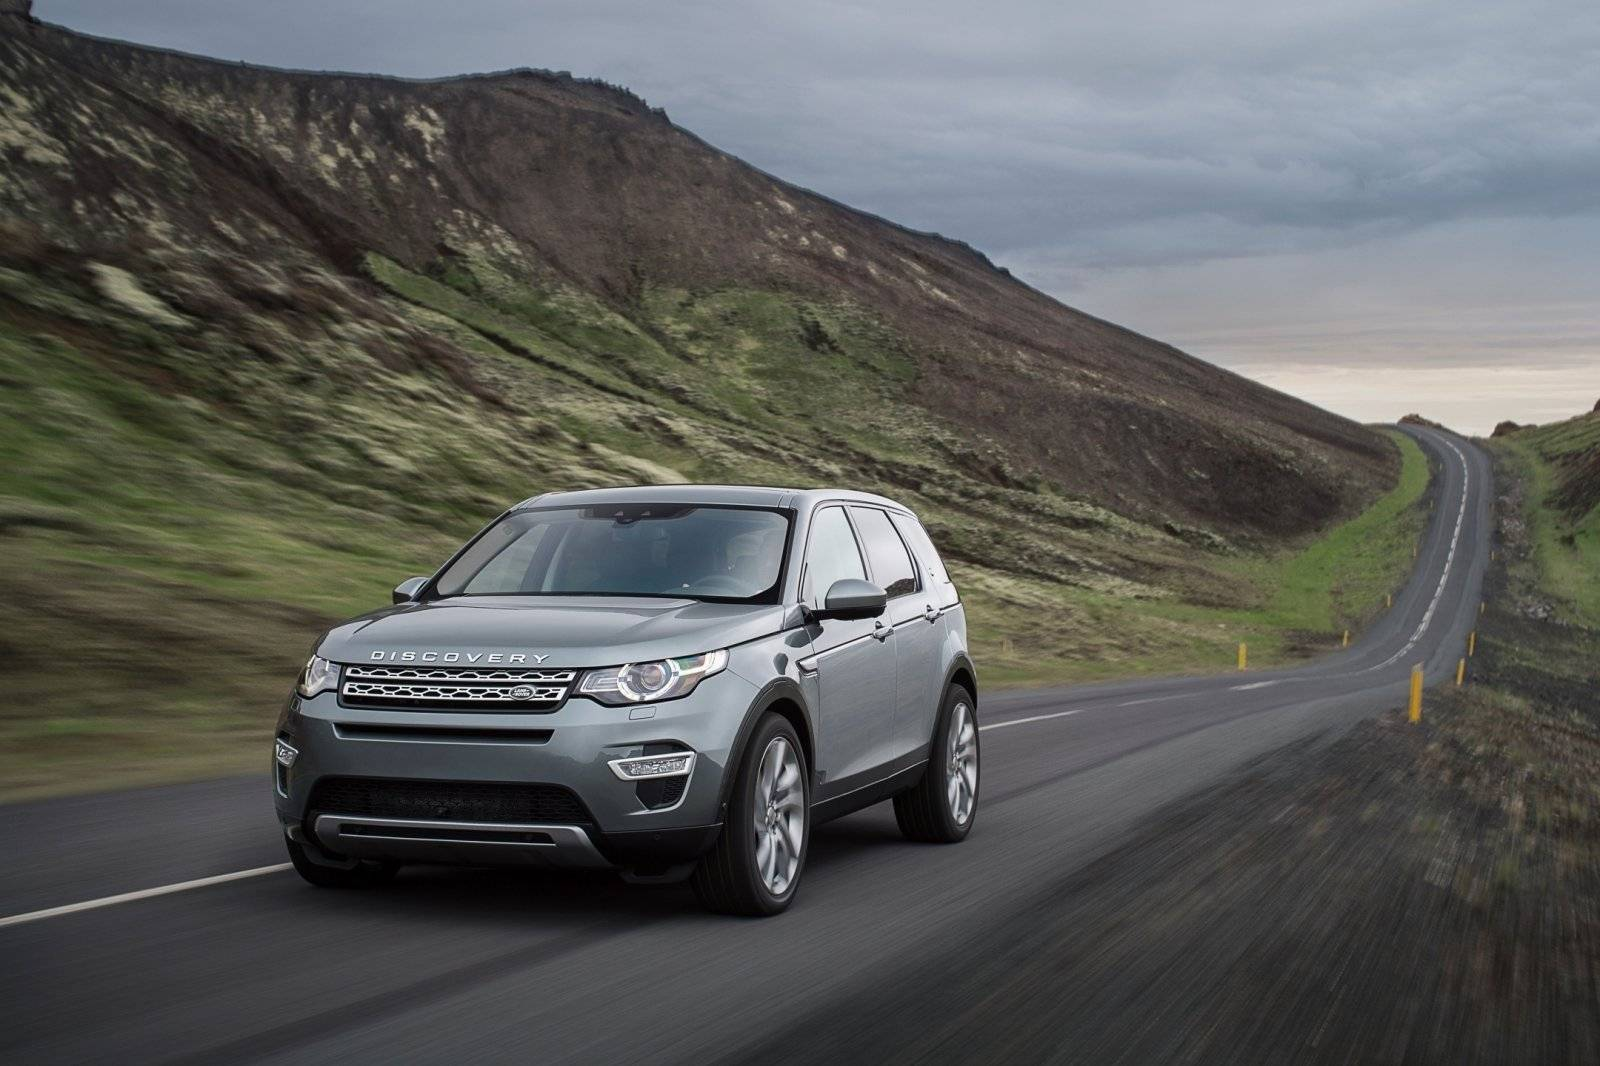 prijs land rover discovery sport bekend autonieuws. Black Bedroom Furniture Sets. Home Design Ideas